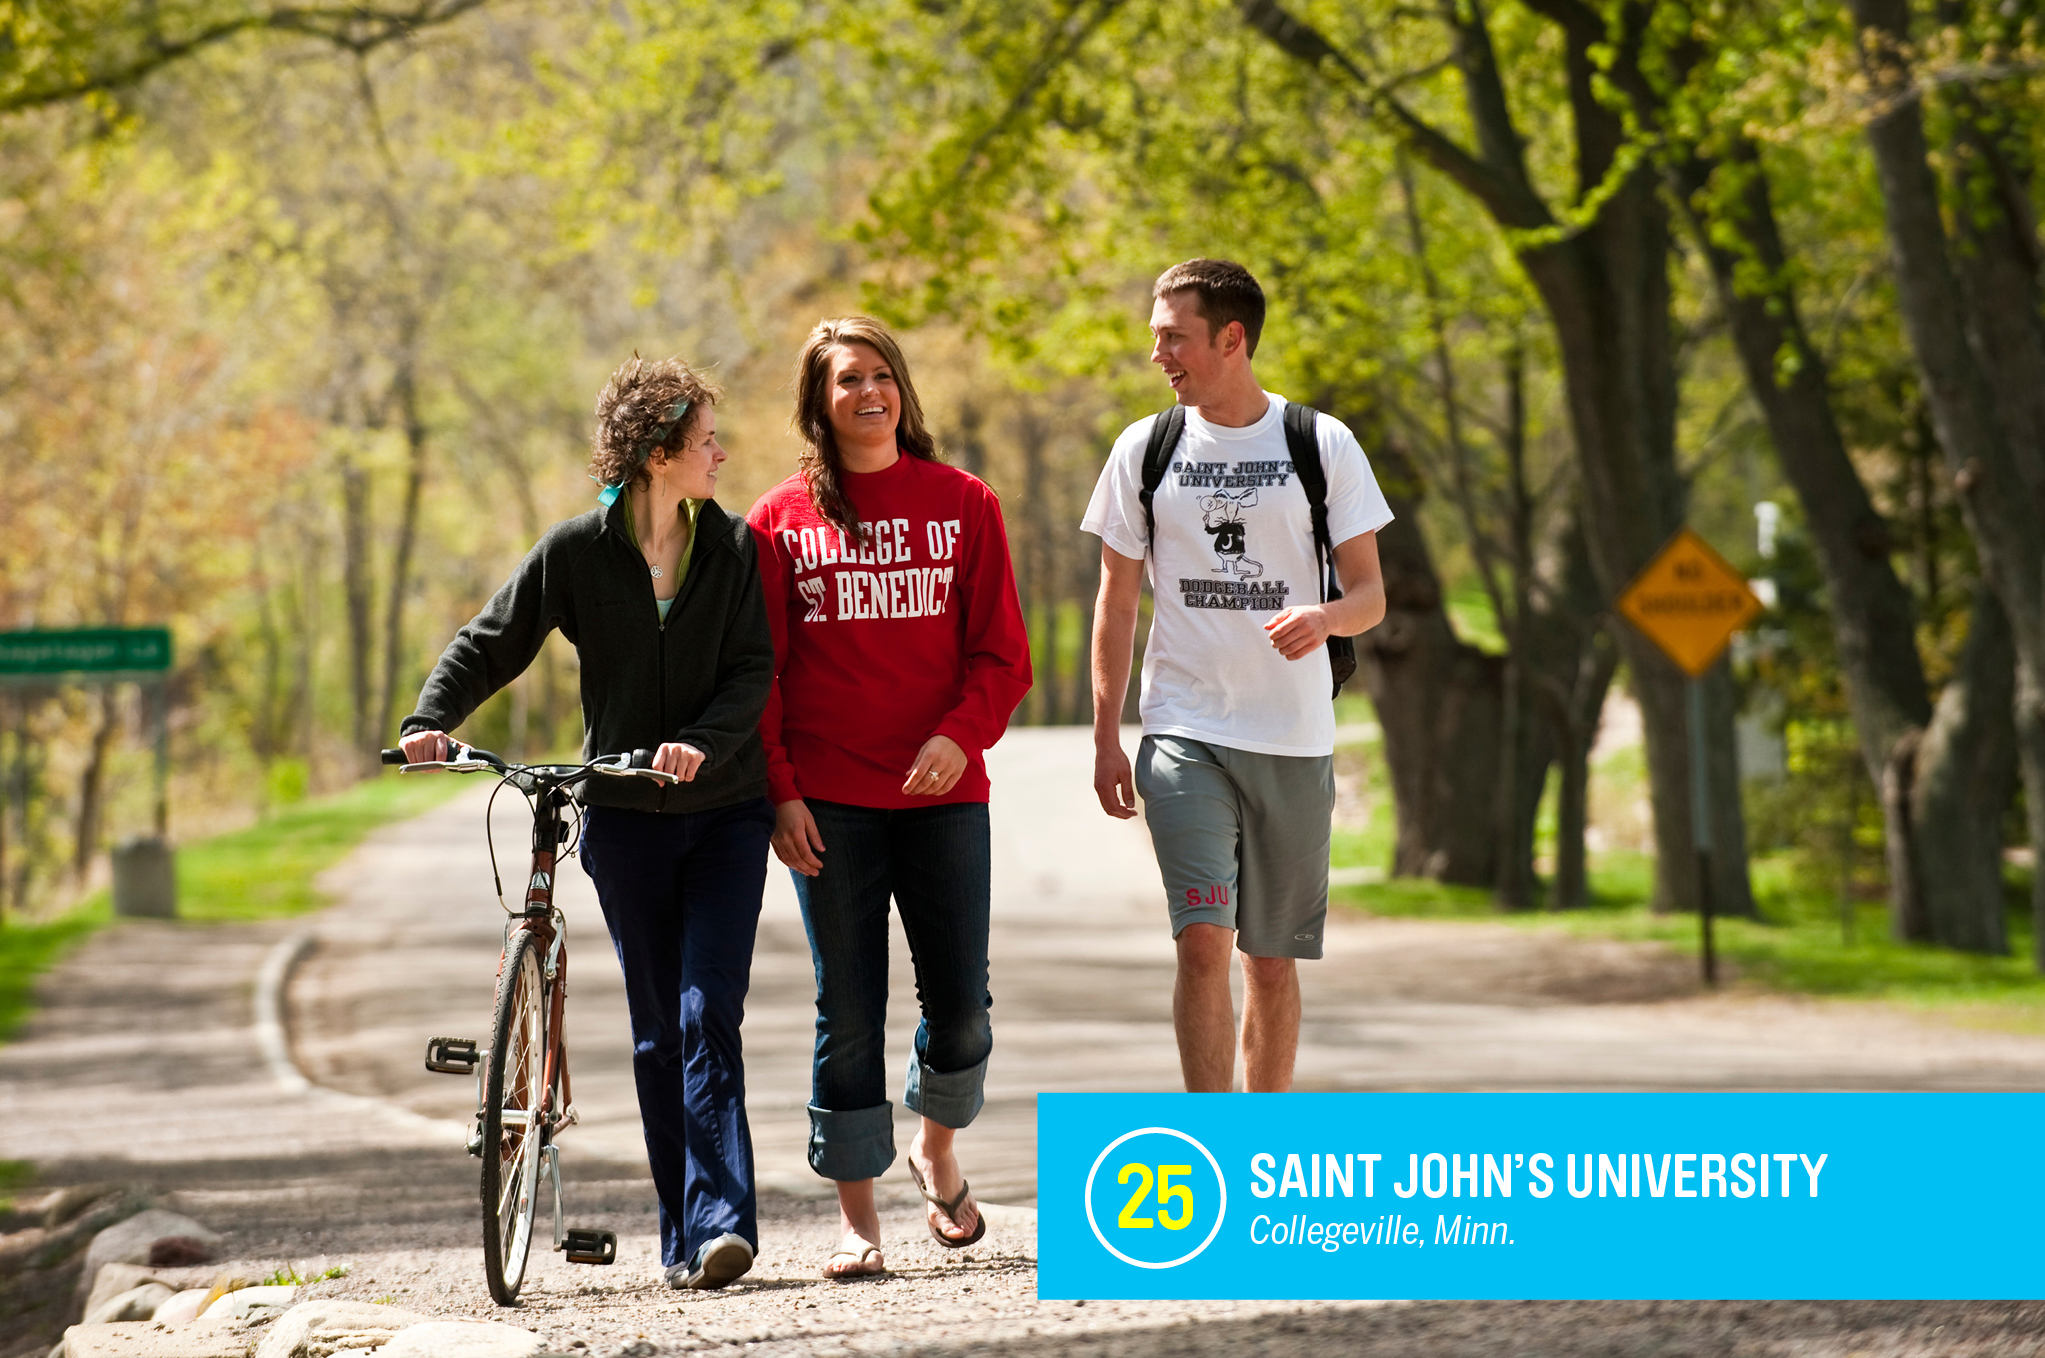 """<a href=""""https://money.com/best-colleges/profile/saint-johns-university/"""" target=""""_blank"""">Saint John's University</a> is a Catholic school for men that partners with a nearby women's school, College of Saint Benedict, to share academic programs and campuses resources. Nearly 80% of students at Saint John's graduate within six years, 12% higher than similar schools. <a href=""""https://money.com/best-colleges/profile/saint-johns-university/"""" target=""""_blank"""">FULL PROFILE</a>"""